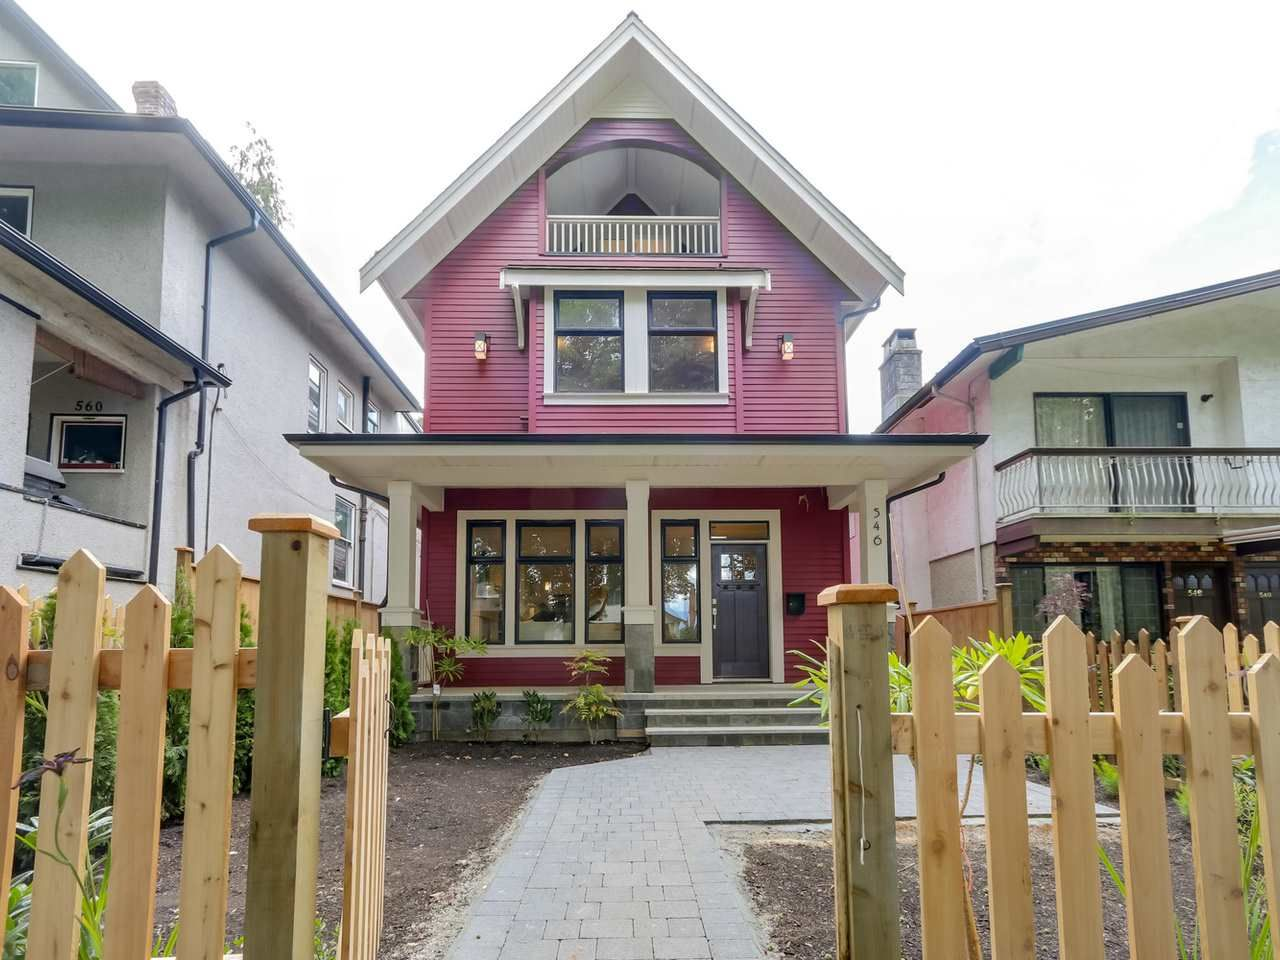 Main Photo: 546 E 10TH Avenue in Vancouver: Mount Pleasant VE 1/2 Duplex for sale (Vancouver East)  : MLS®# R2085116